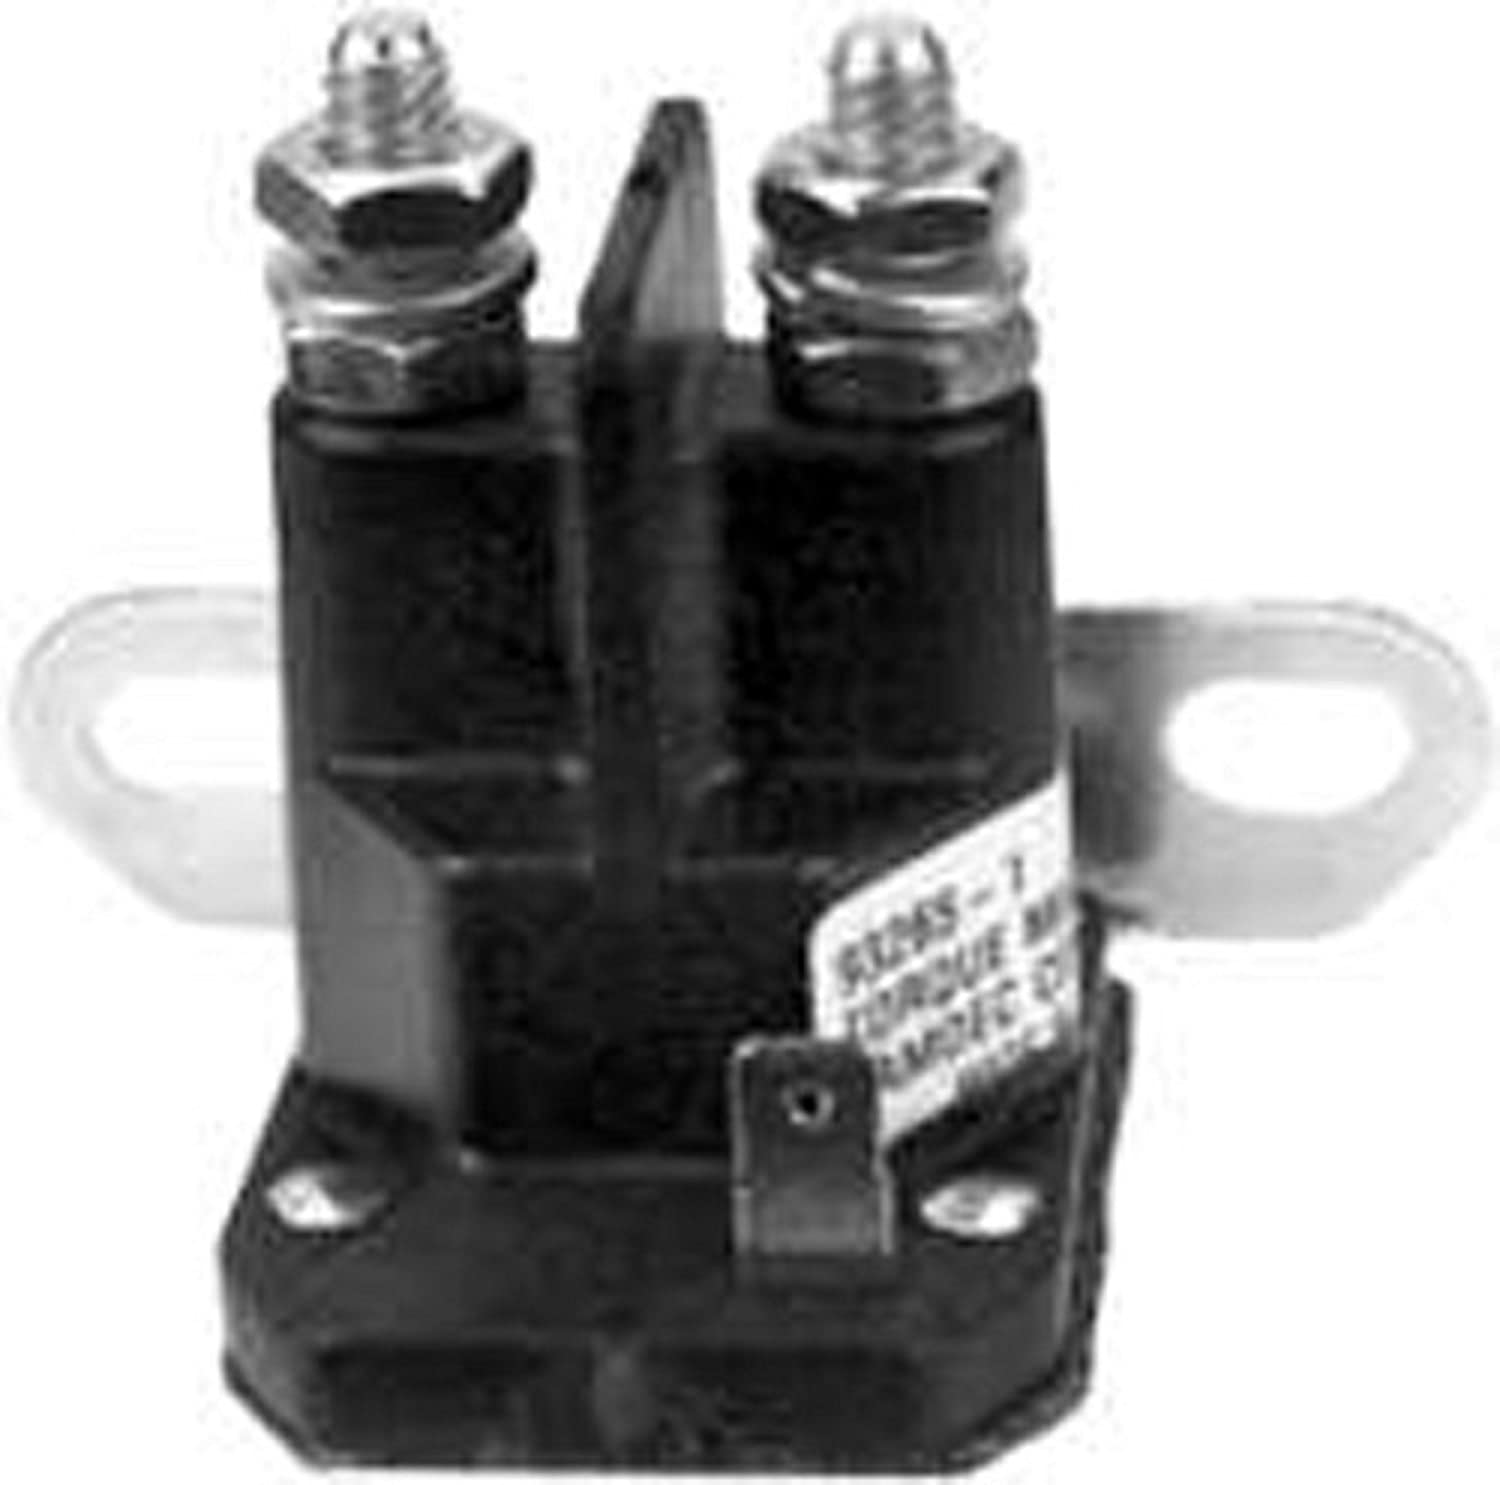 810j368Wm8L._SL1500_ amazon com mtd, ward, yard man, starter solenoid; 725 1426, 925  at n-0.co